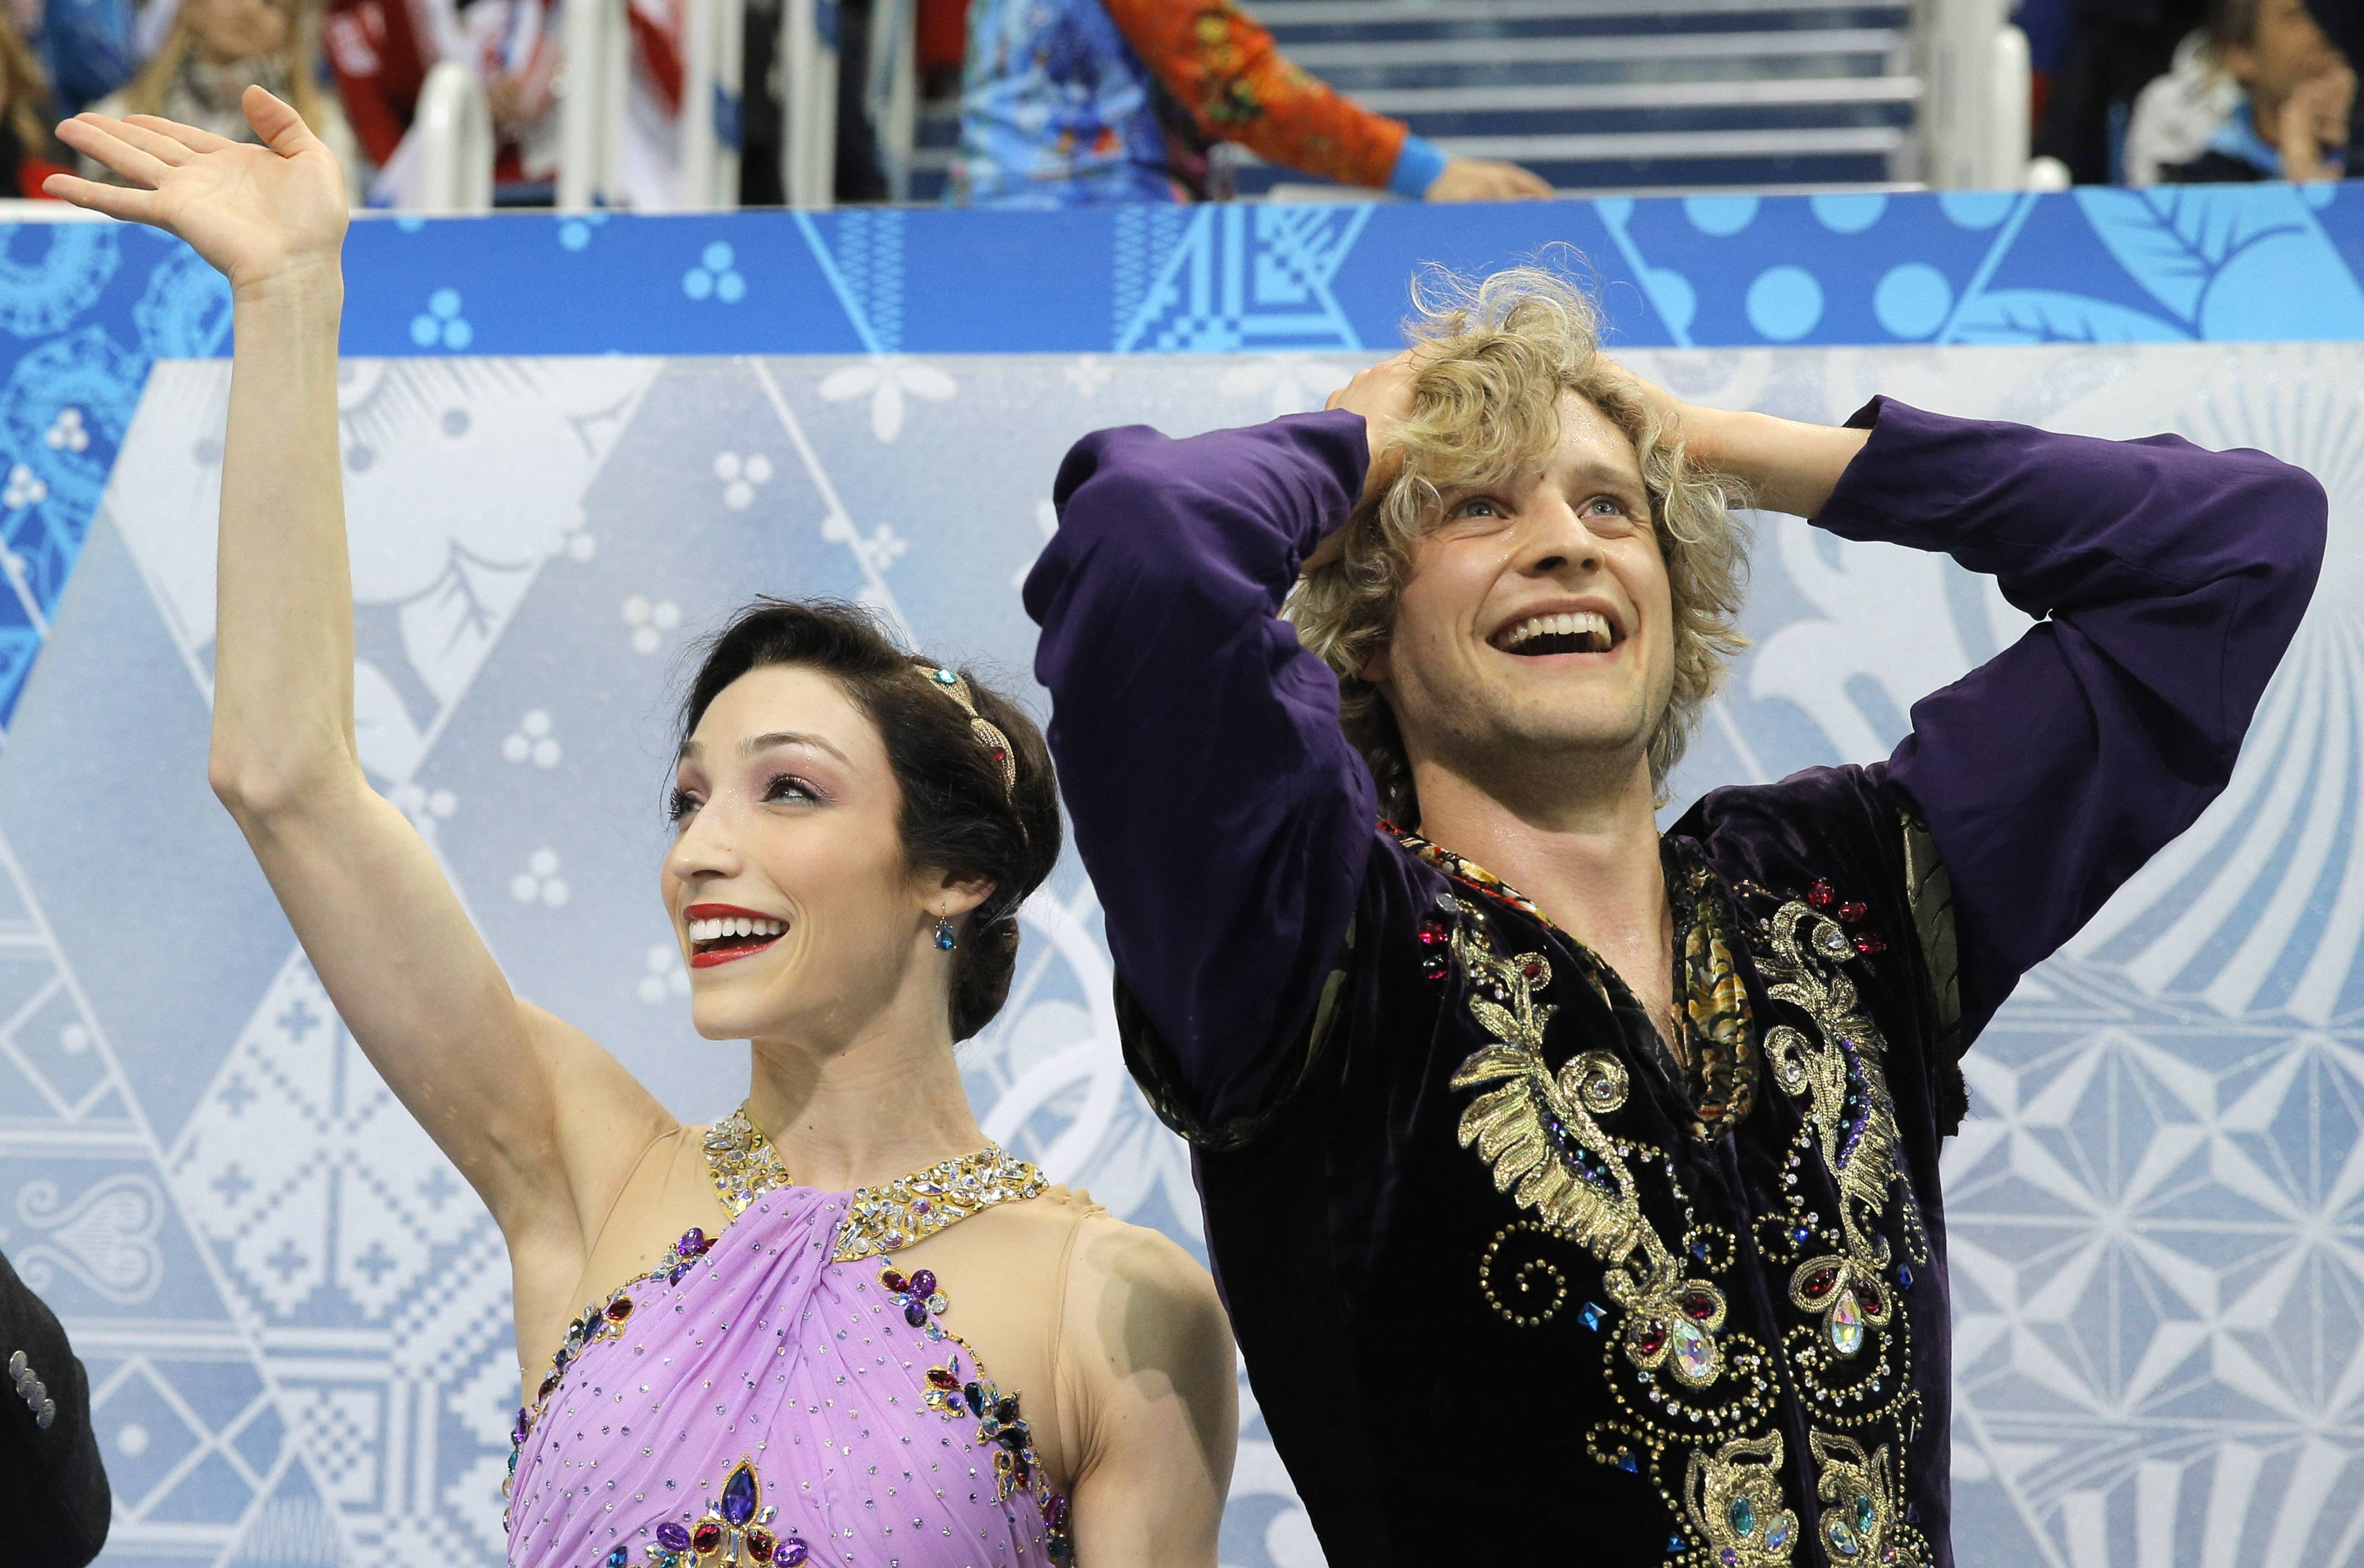 Meryl Davis and Charlie White of the United States react in the results area Monday after competing in the ice dance free dance figure skating finals at the Iceberg Skating Palace during the 2014 Winter Olympics in Sochi, Russia.